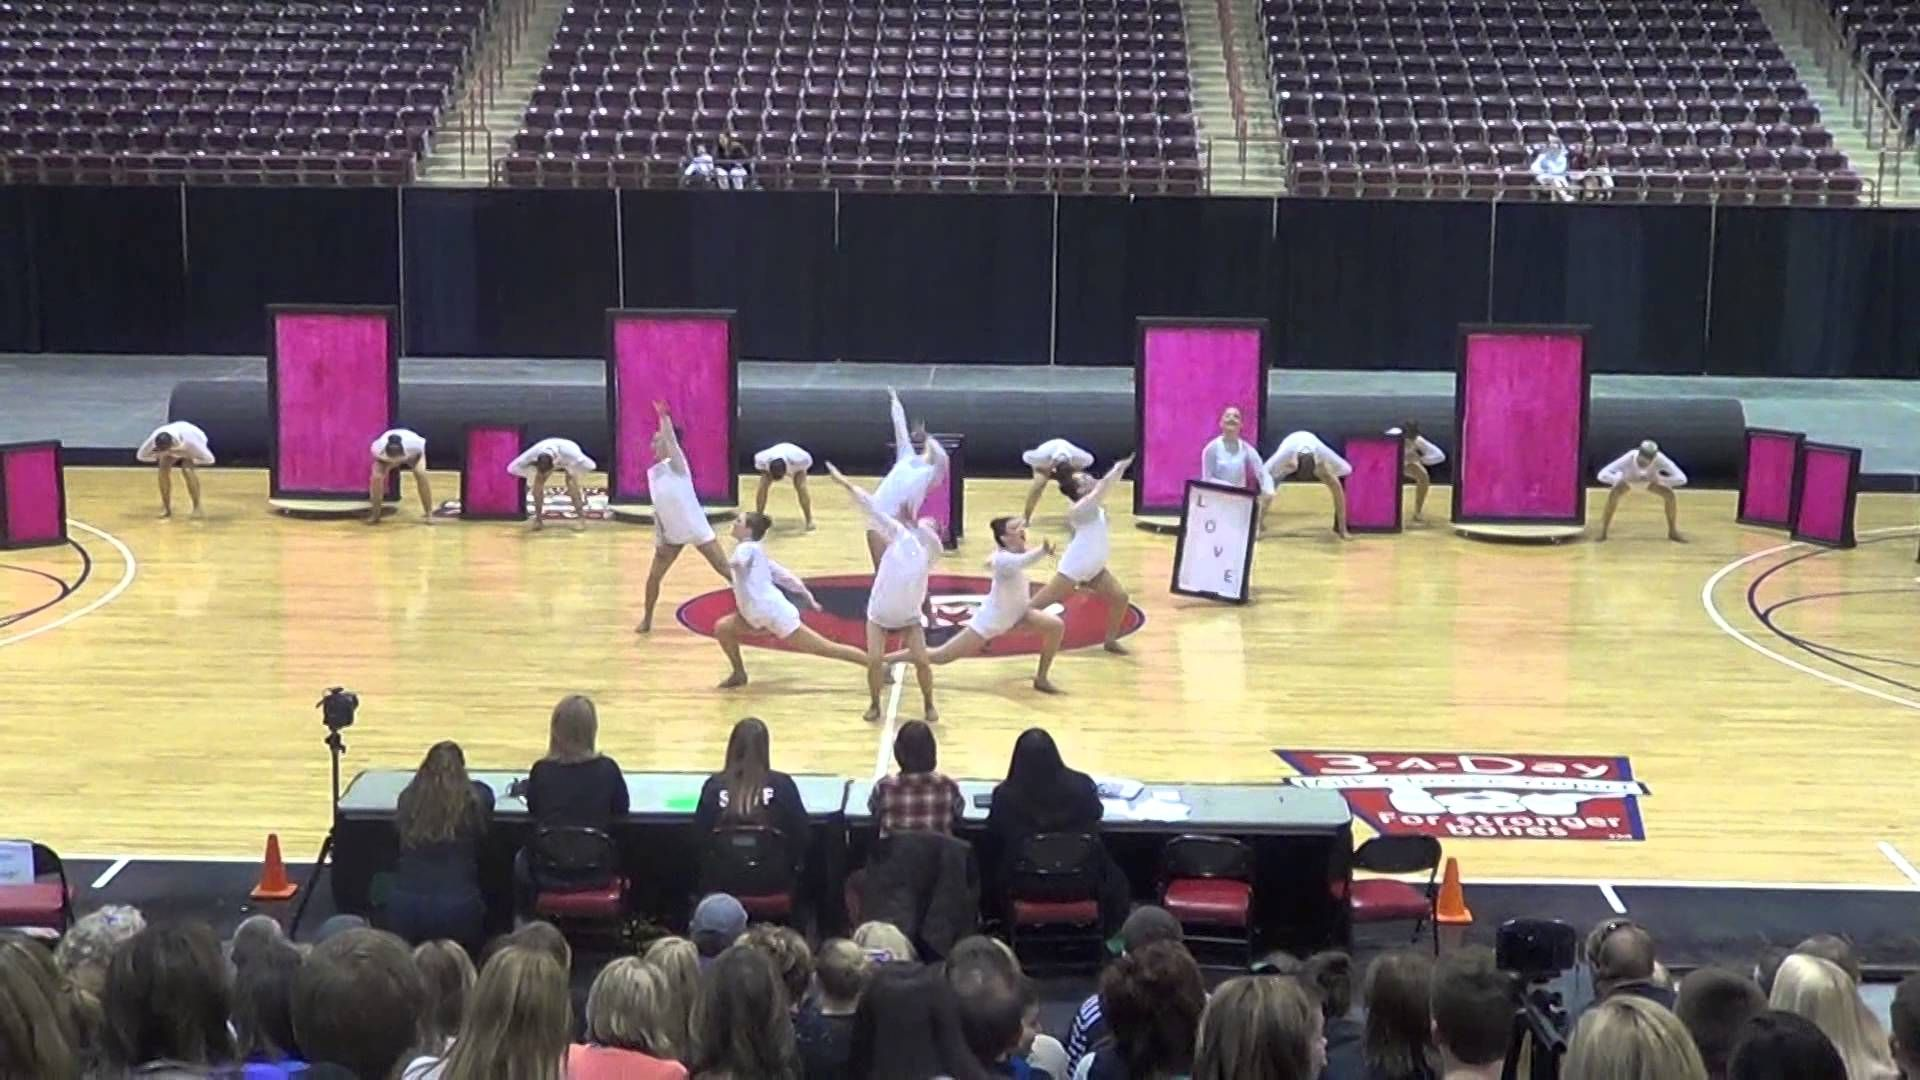 Sweet Liberty Dance Team 2014: A Dance Inspired By Breast Cancer | The Breast Cancer Site Blog